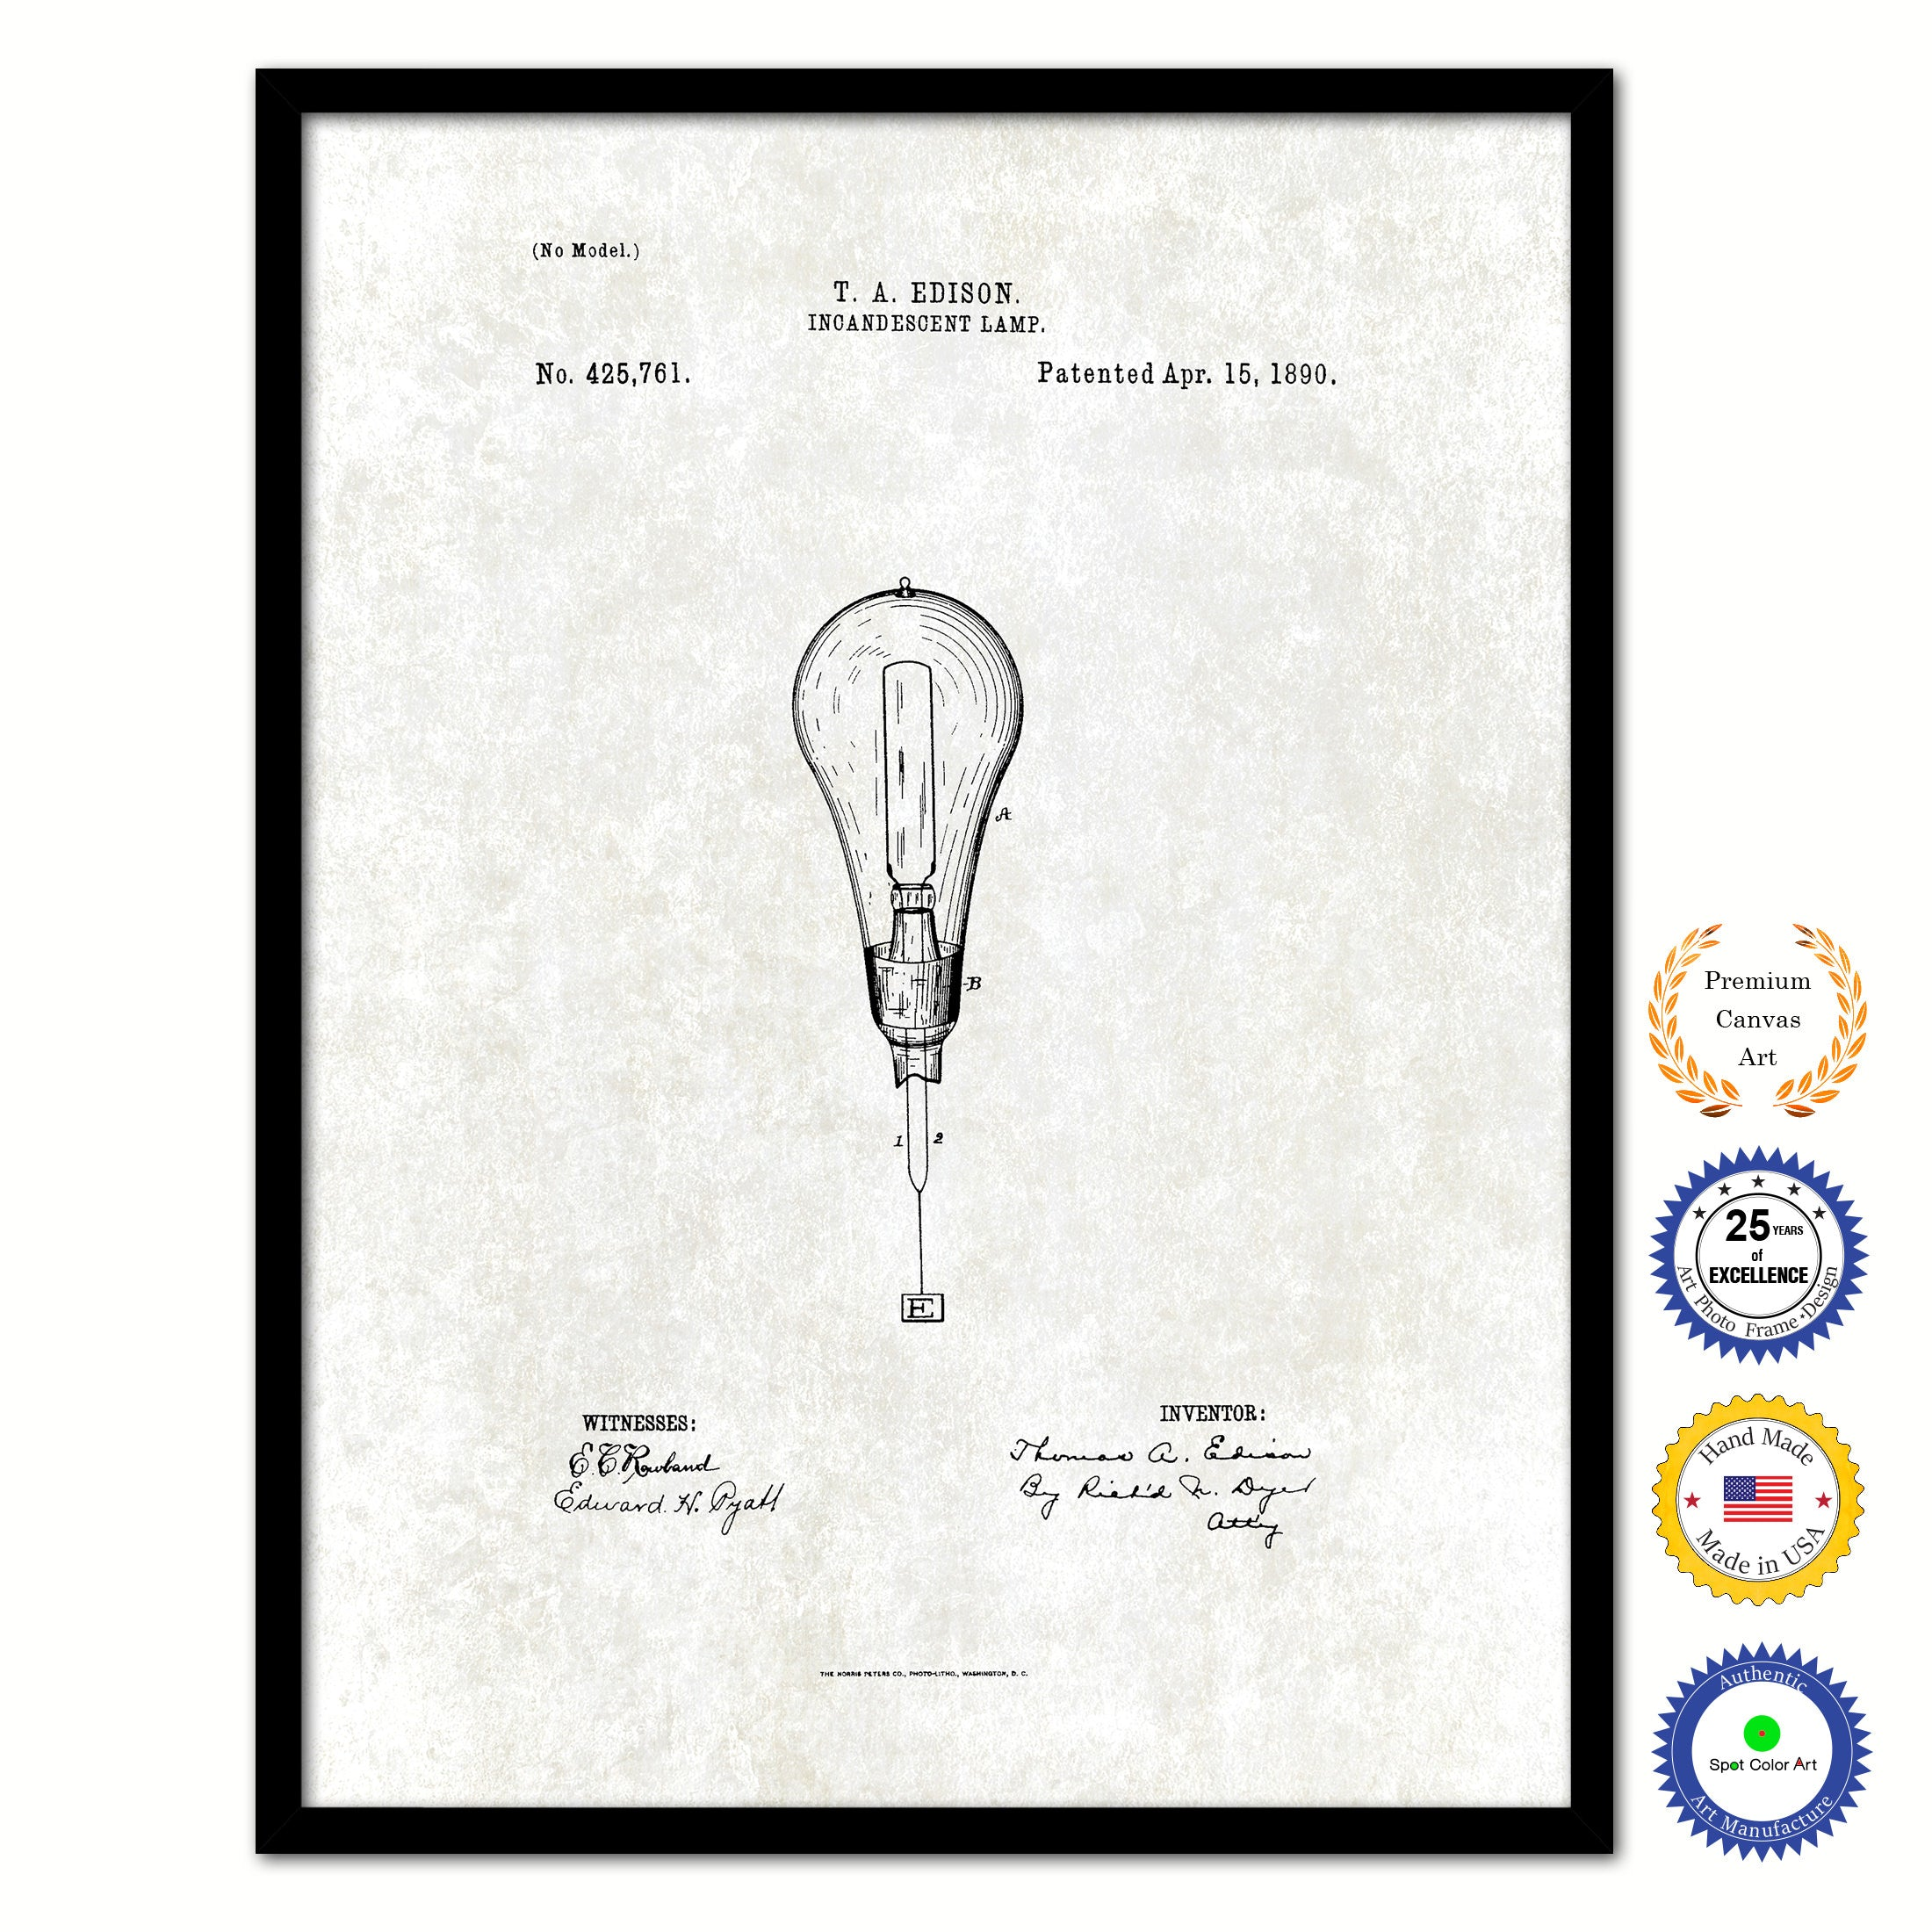 1890 Thomas Edison Incandescent Lamp Vintage Patent Artwork Black Framed Canvas Print Home Office Decor Great for Thomas Edison Lover Electrician Inventor